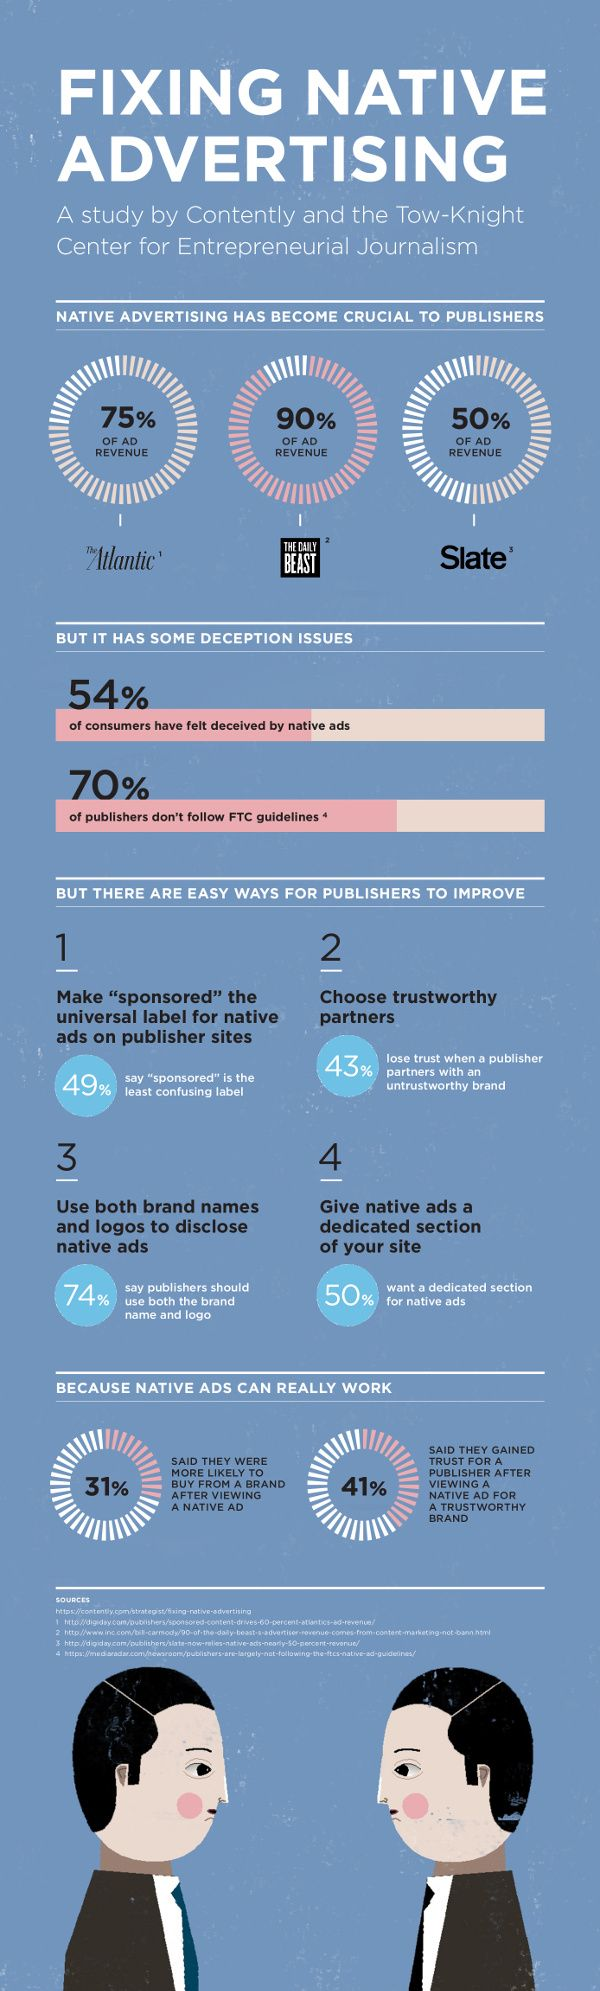 Native Advertising has become crucial to Advertisers: Fixing Native Advertising (Infographic)